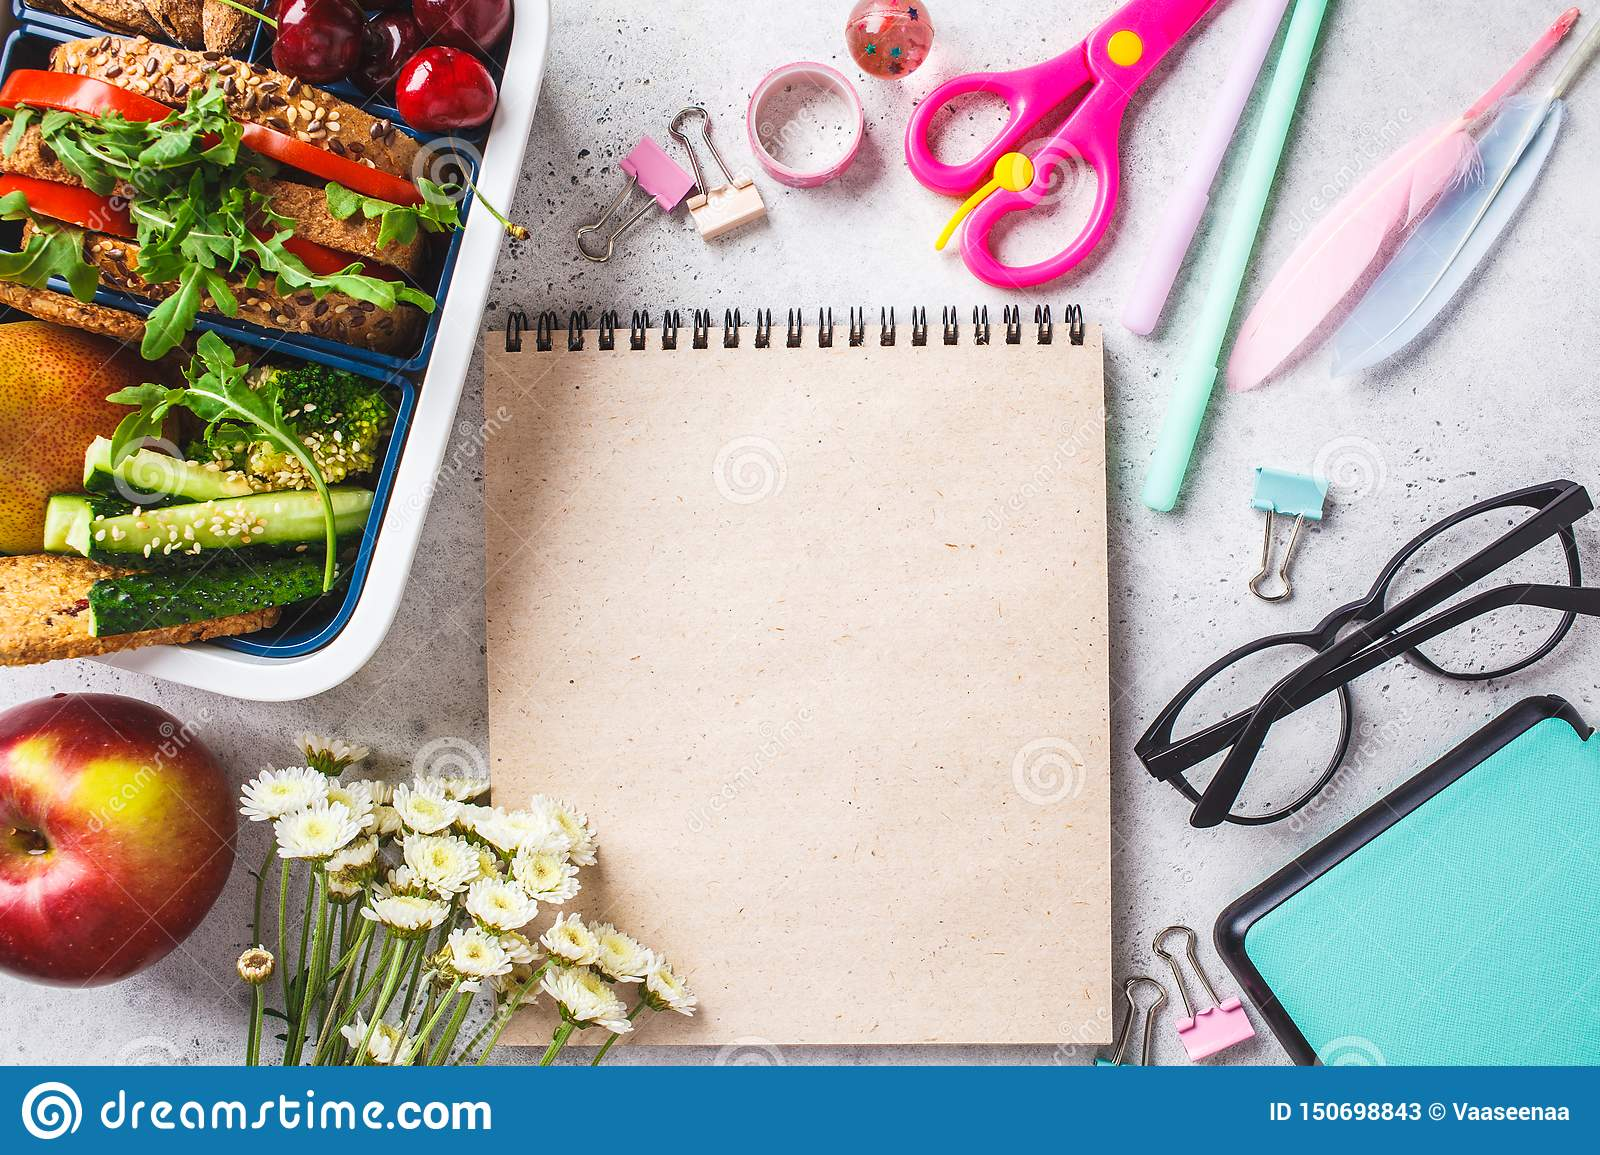 Back to school concept. Lunch box with sandwich, fruit, snacks, notebook, pencils and school items, top view